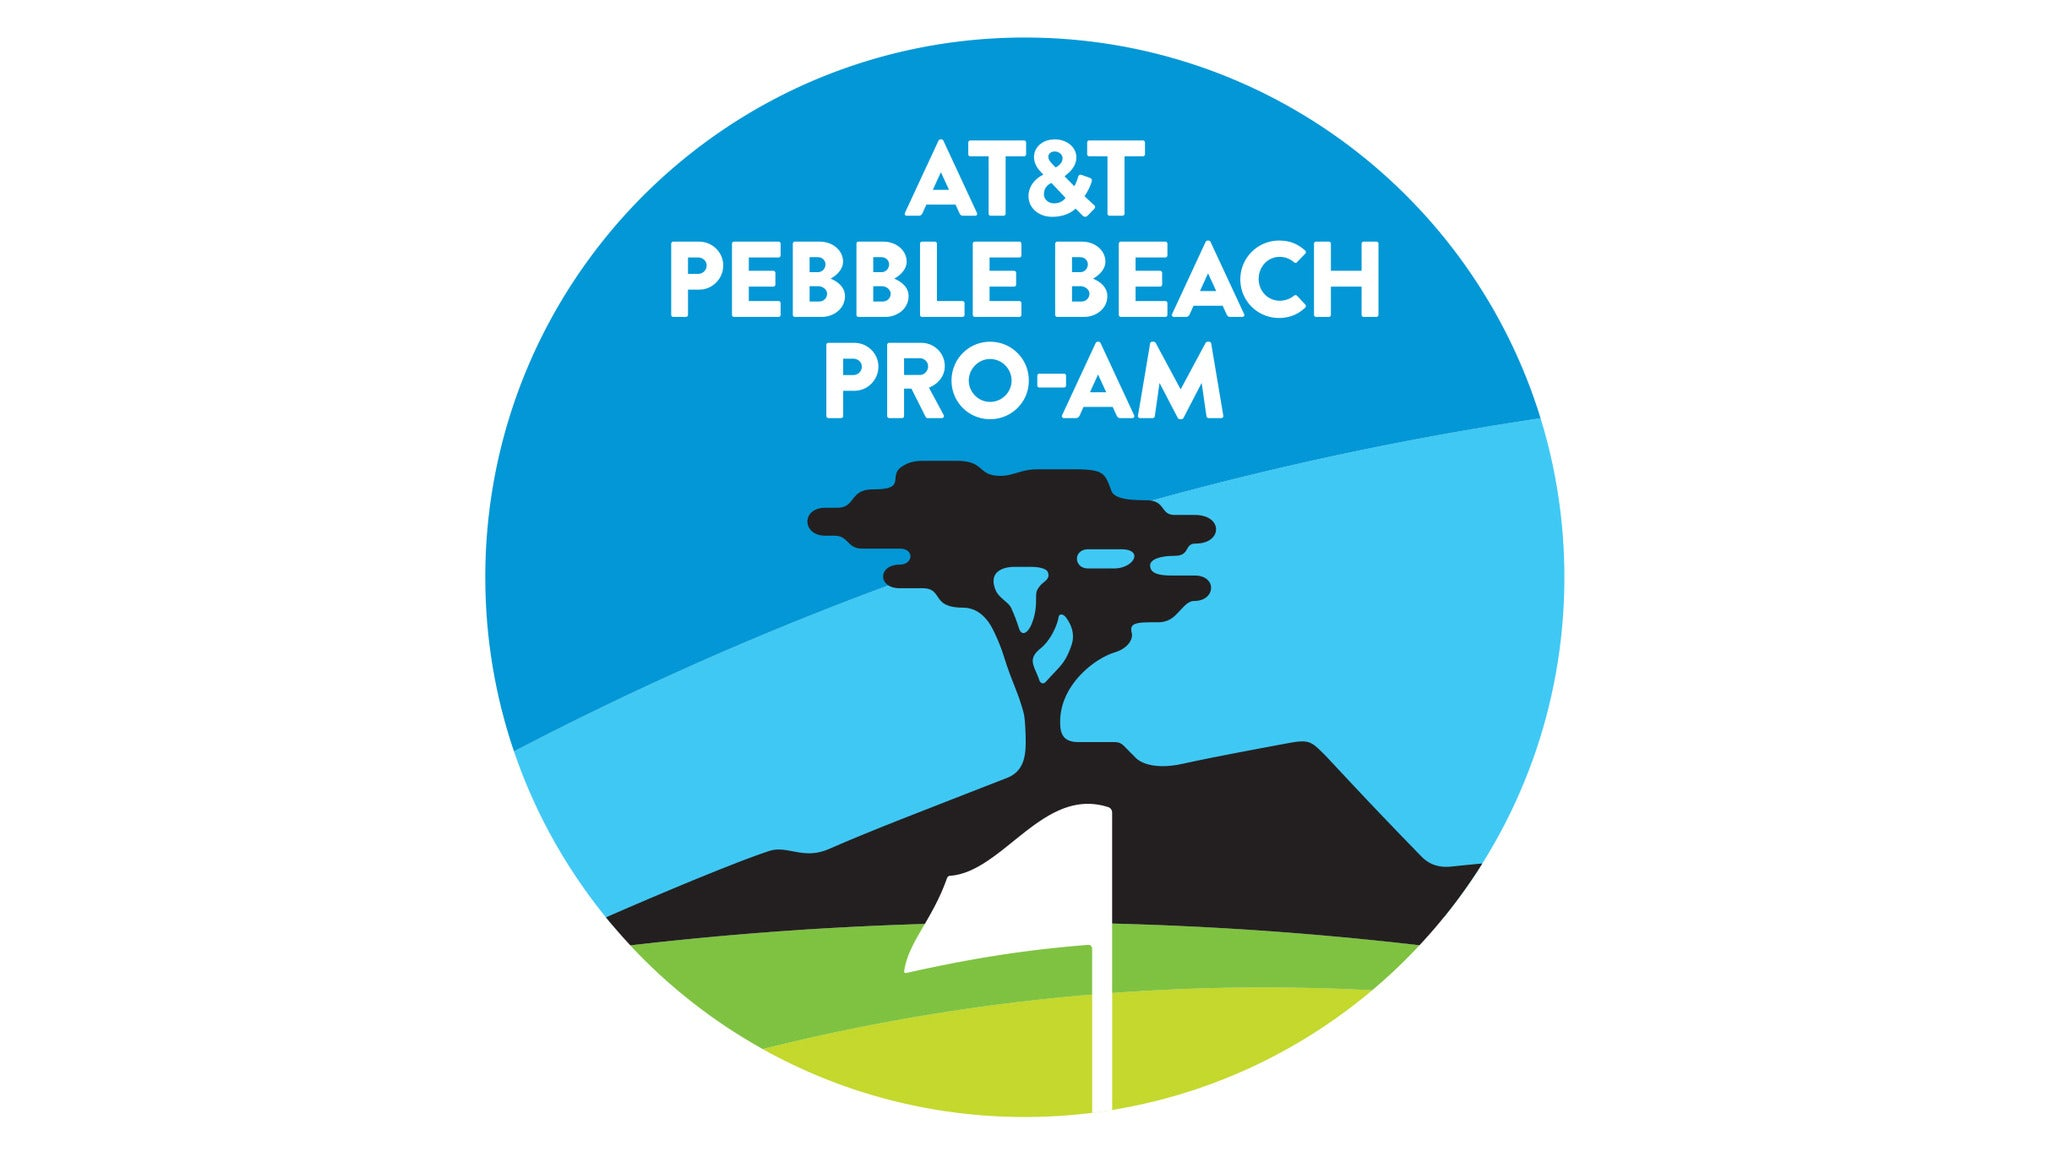 Weekly: AT&T Pebble Beach Pro-Am at Pebble Beach Golf Links